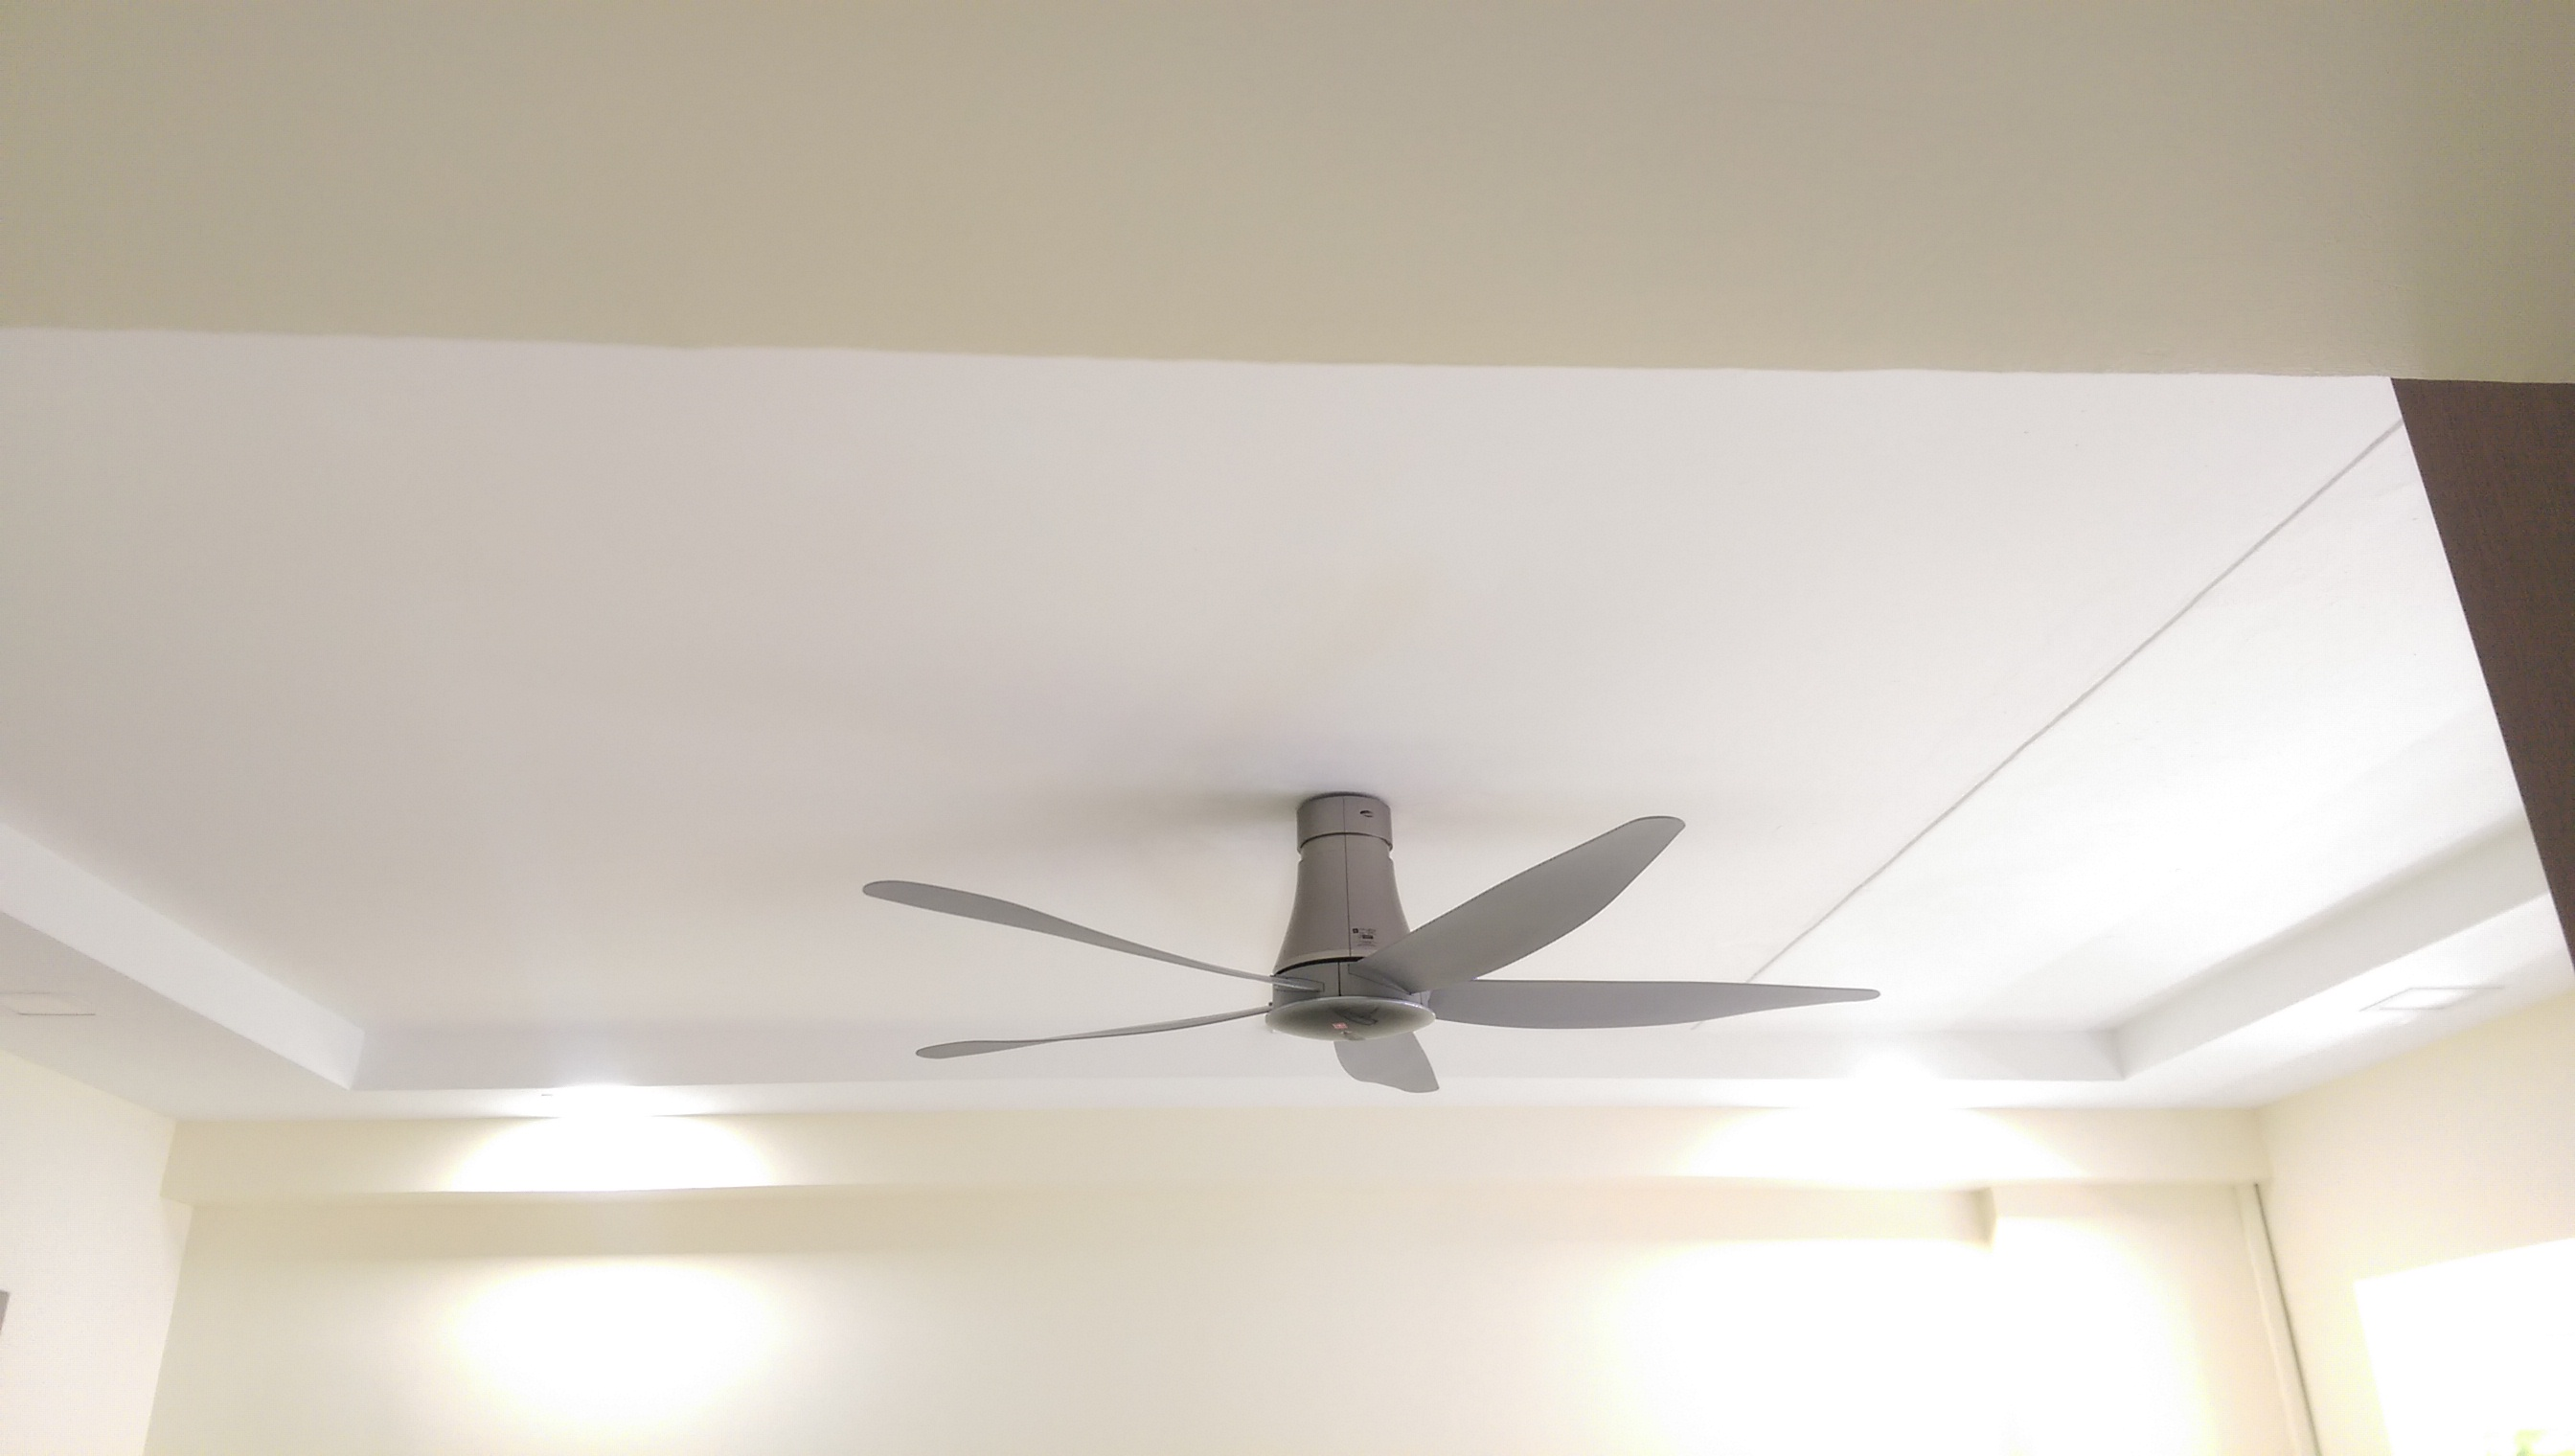 ceiling dc product fan lighting singapore category fanco inch kdk motor light